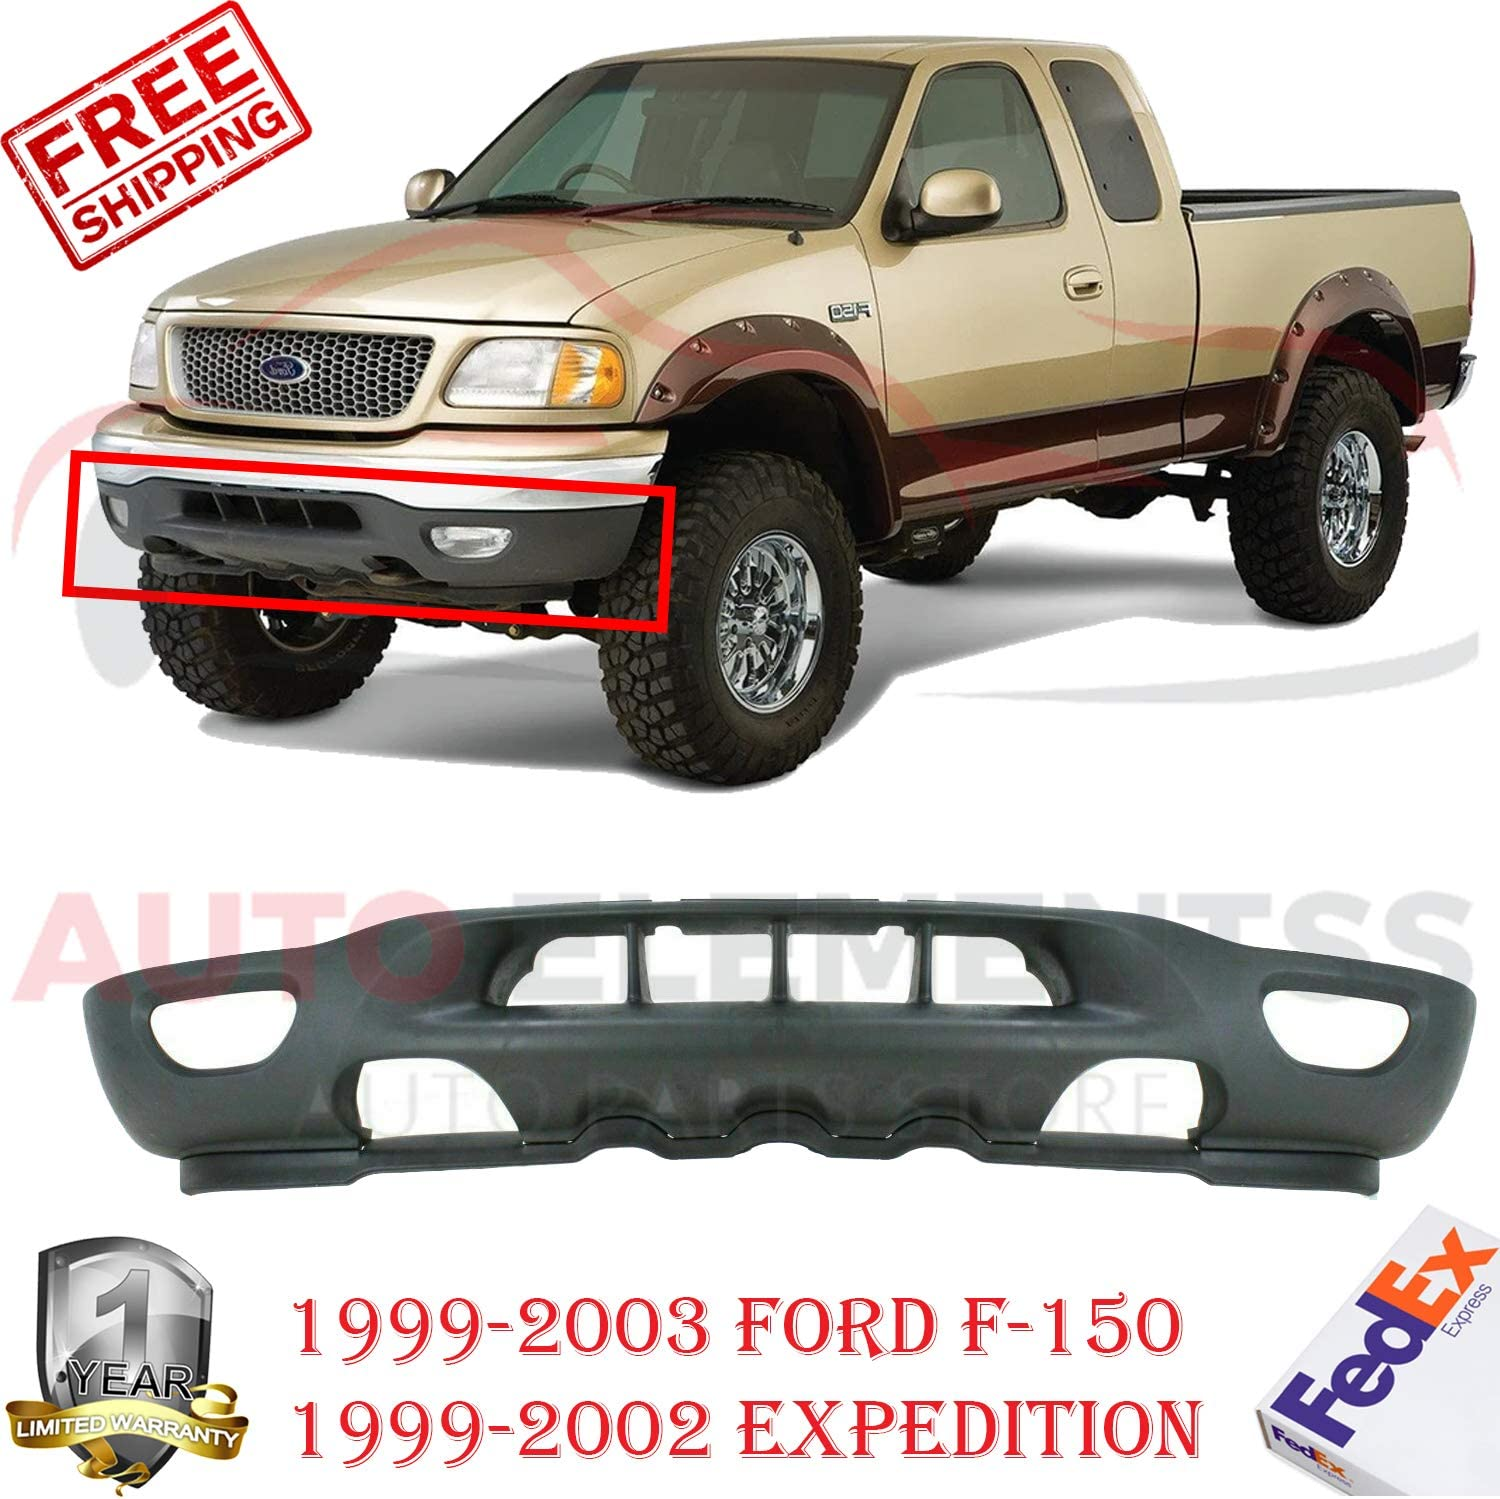 New Front Lower Valance Textured with Tow Hook and Fog Light Holes For 1999-2003 Ford F-150 Pickup Truck //1999-2002 Expedition Direct Replacement